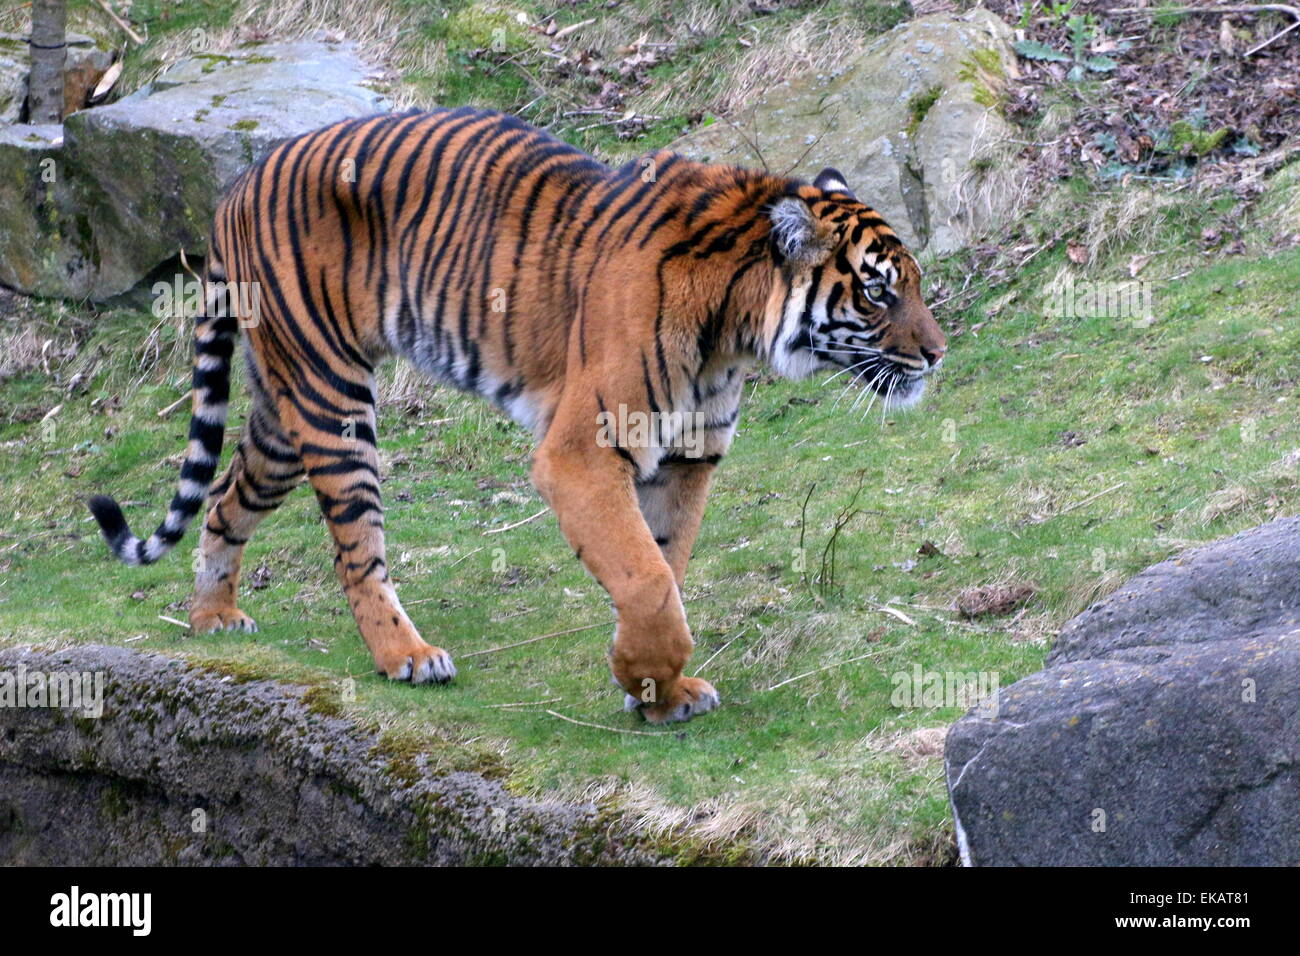 Close-up of a mature Sumatran tiger (Panthera tigris sumatrae) on the prowl - Stock Image